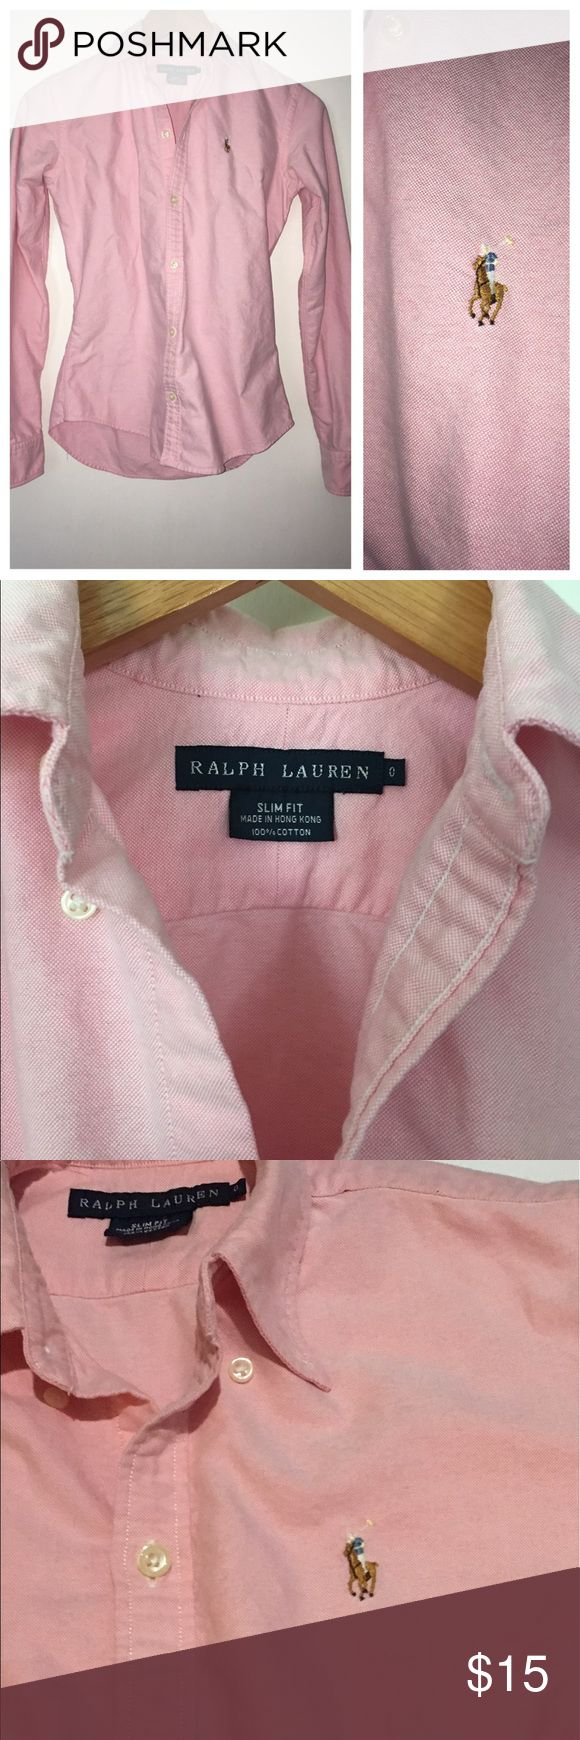 Pink Ralph Lauren slim fit button down Classic light pink Ralph Lauren slim fit button down shirt, size 0.  Top is in excellent condition with no rips, stains, or flaws! Ralph Lauren Tops Button Down Shirts